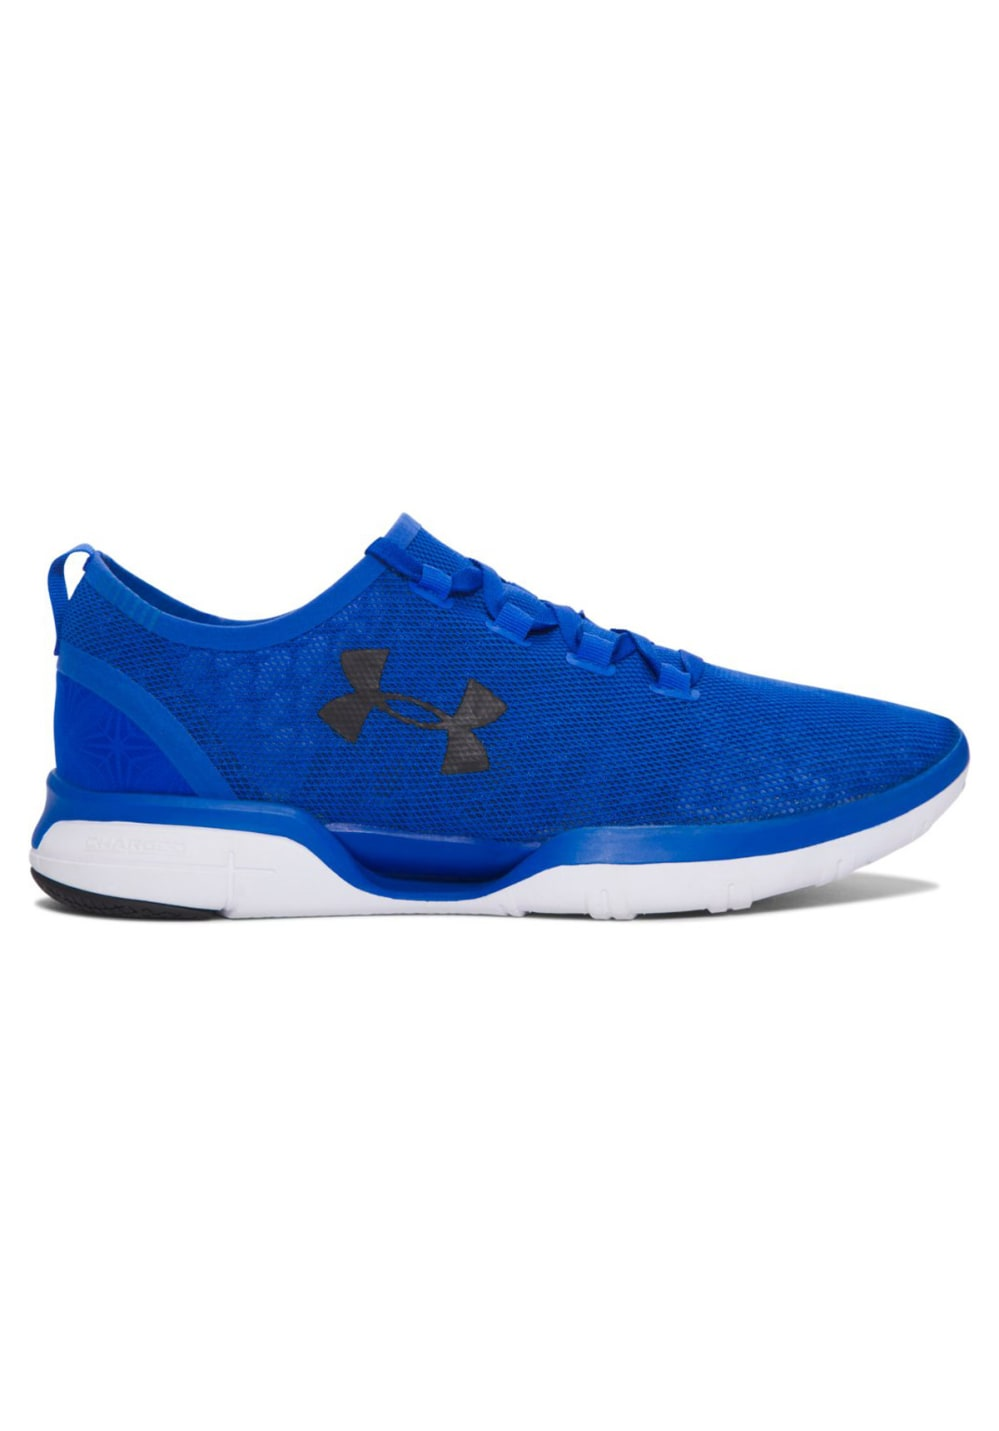 451a5fd69a3 Under Armour Charged Coolswitch Run - Zapatillas de running para ...